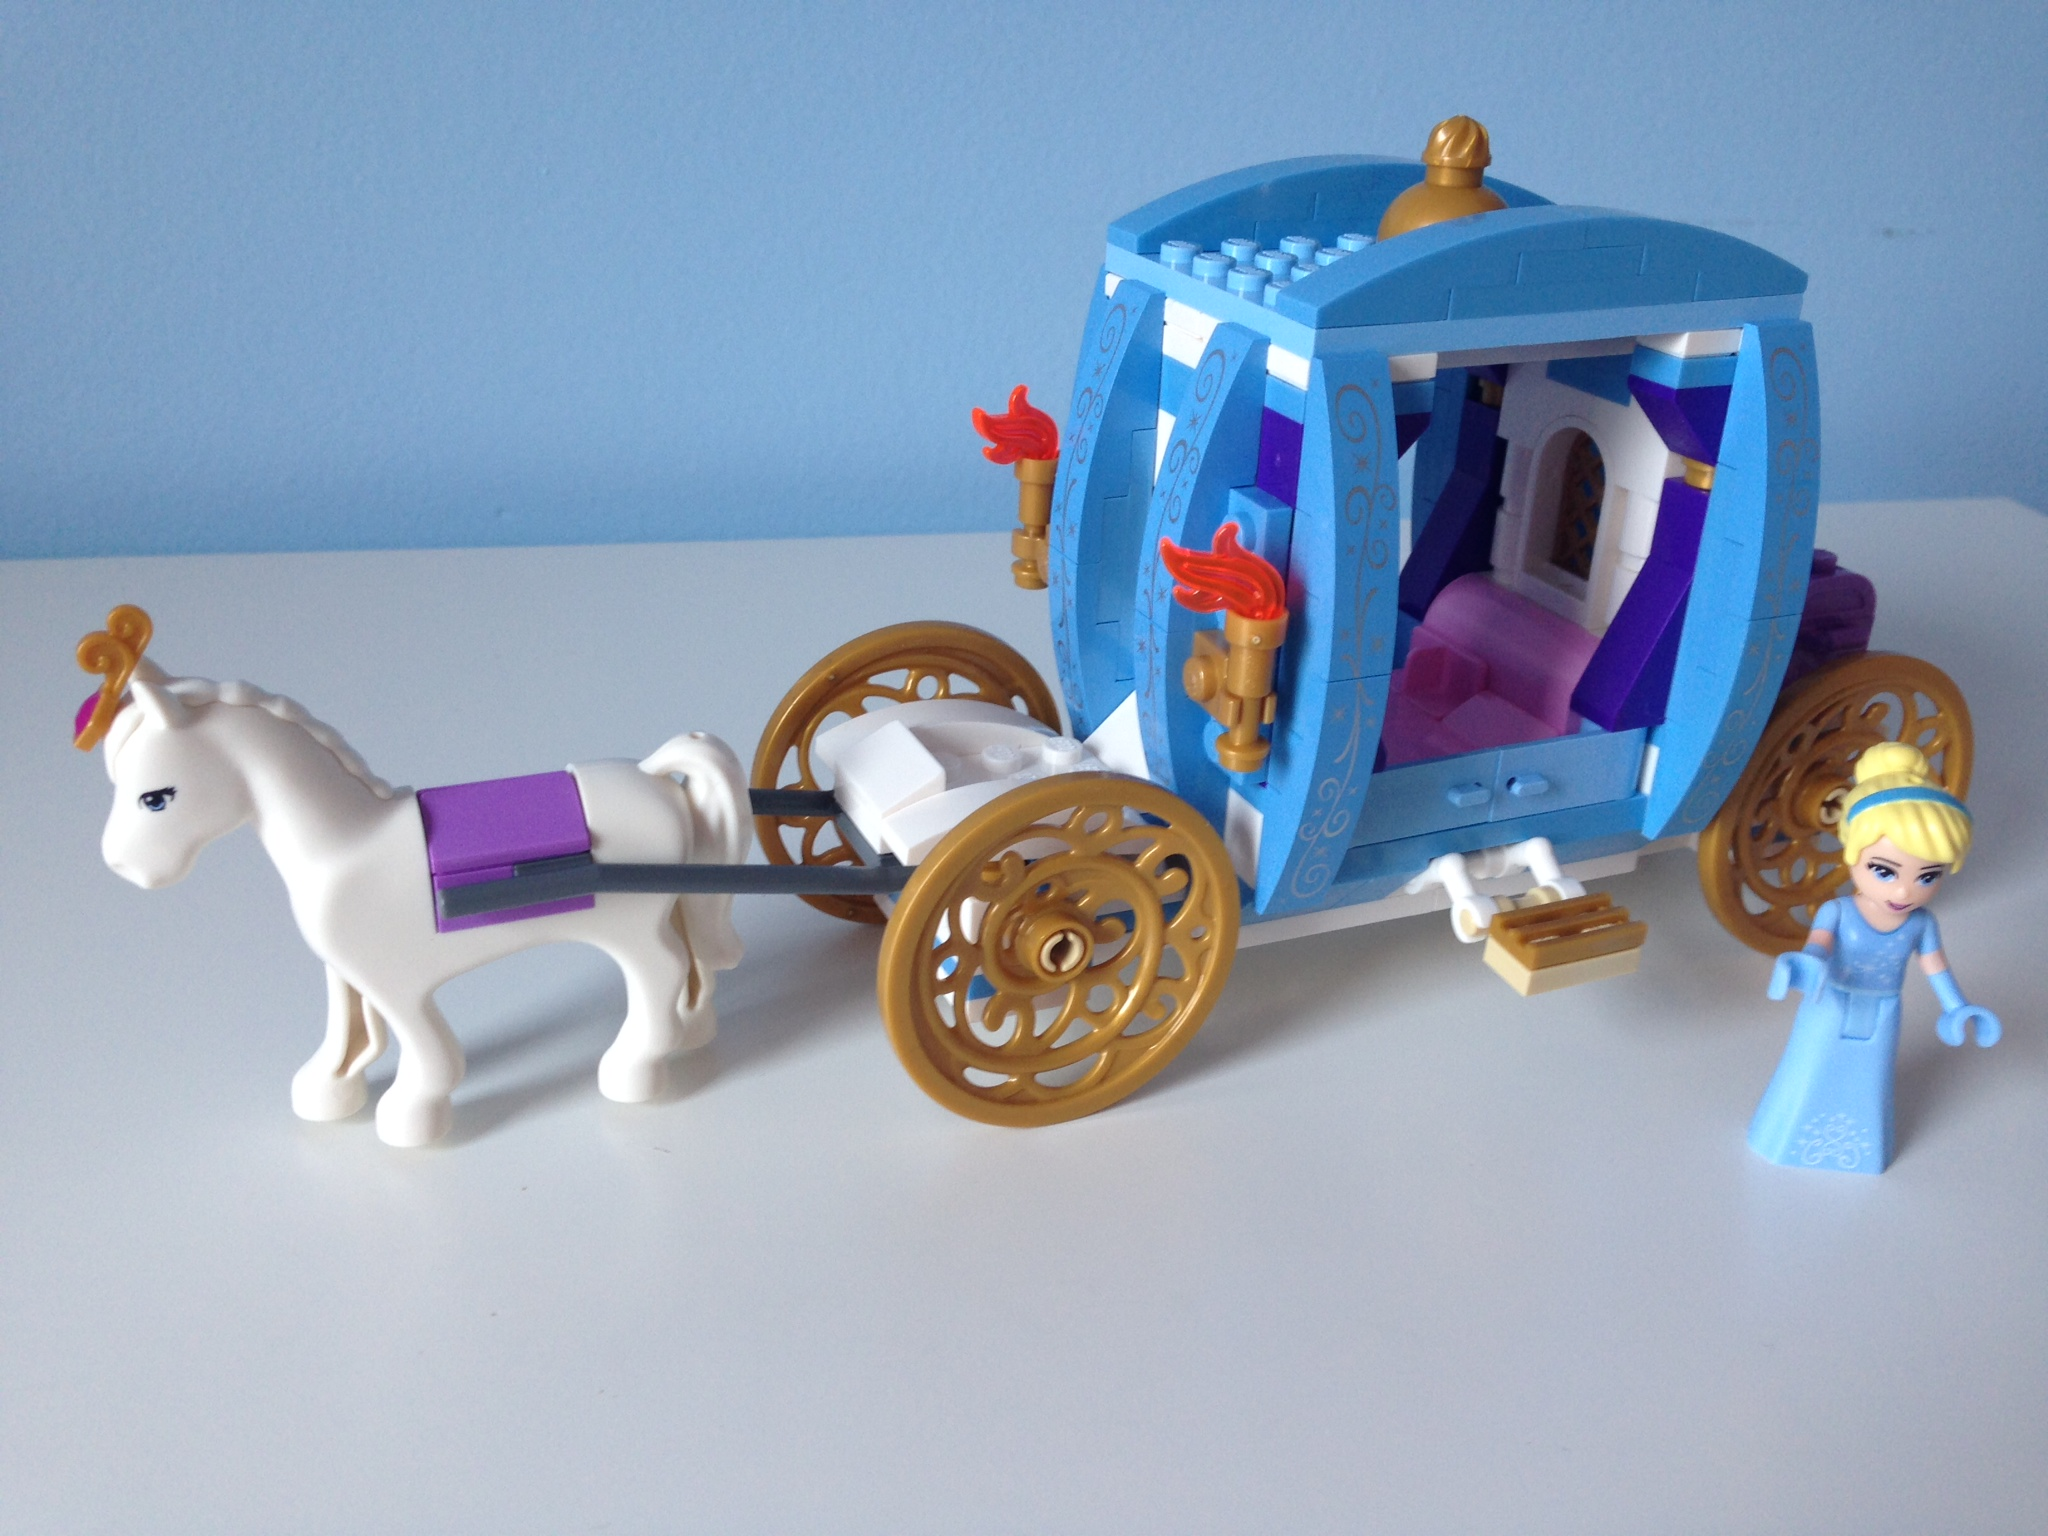 Dream Carriage, what a dream Carriage dream to see 14